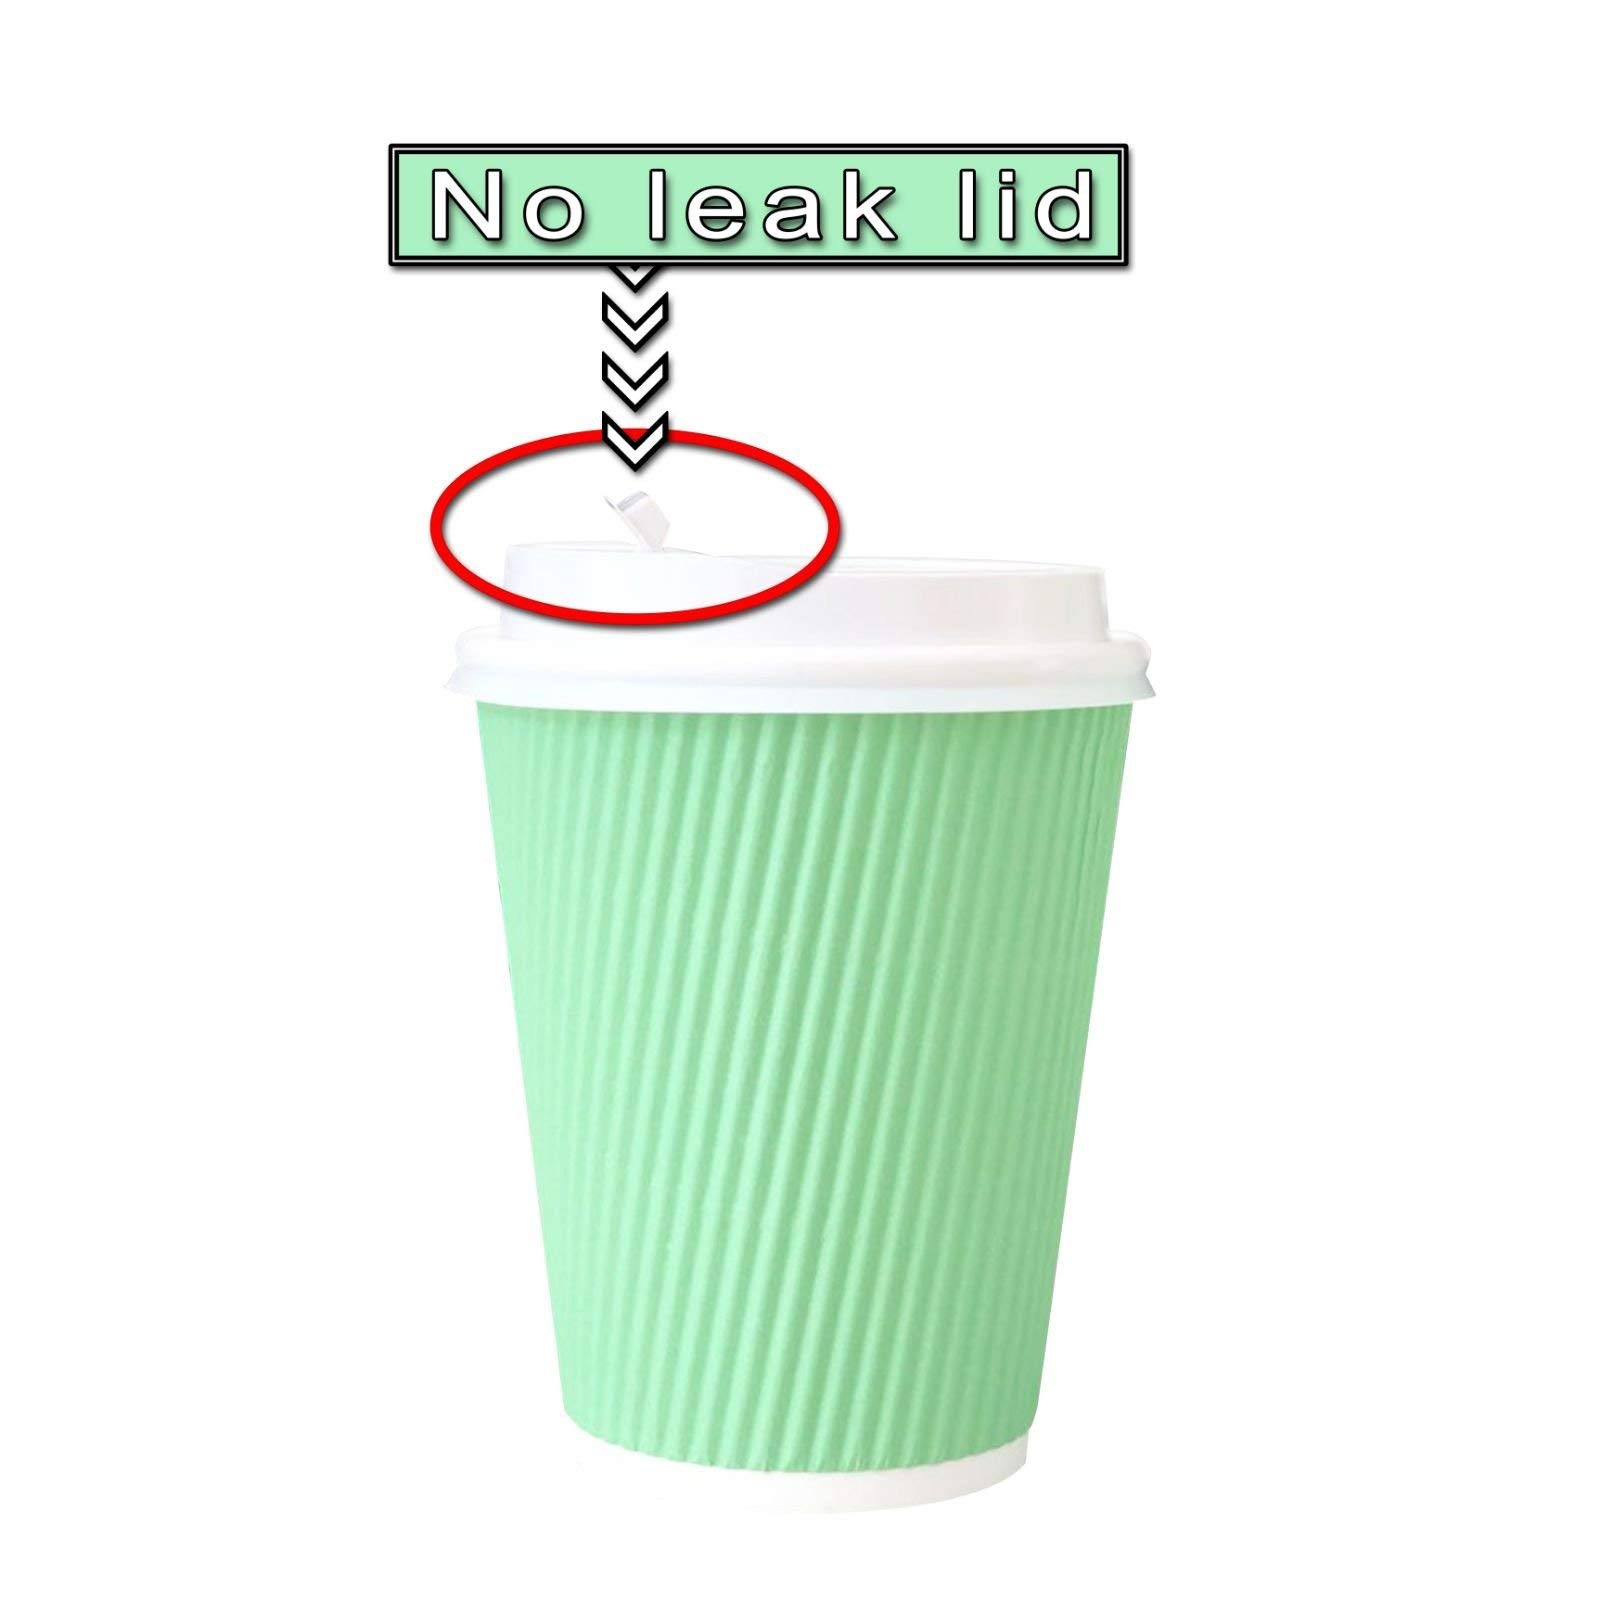 60 Pack -12 oz Premium Quality Disposable Hot Paper Coffee Cups With Lids - Ripple Wall With Insulation For Heat Protection,No Leak Lid,No Sleeves Needed,Perfect To Go,Office,Bars,Parties & Travel by FarSmart (Image #3)